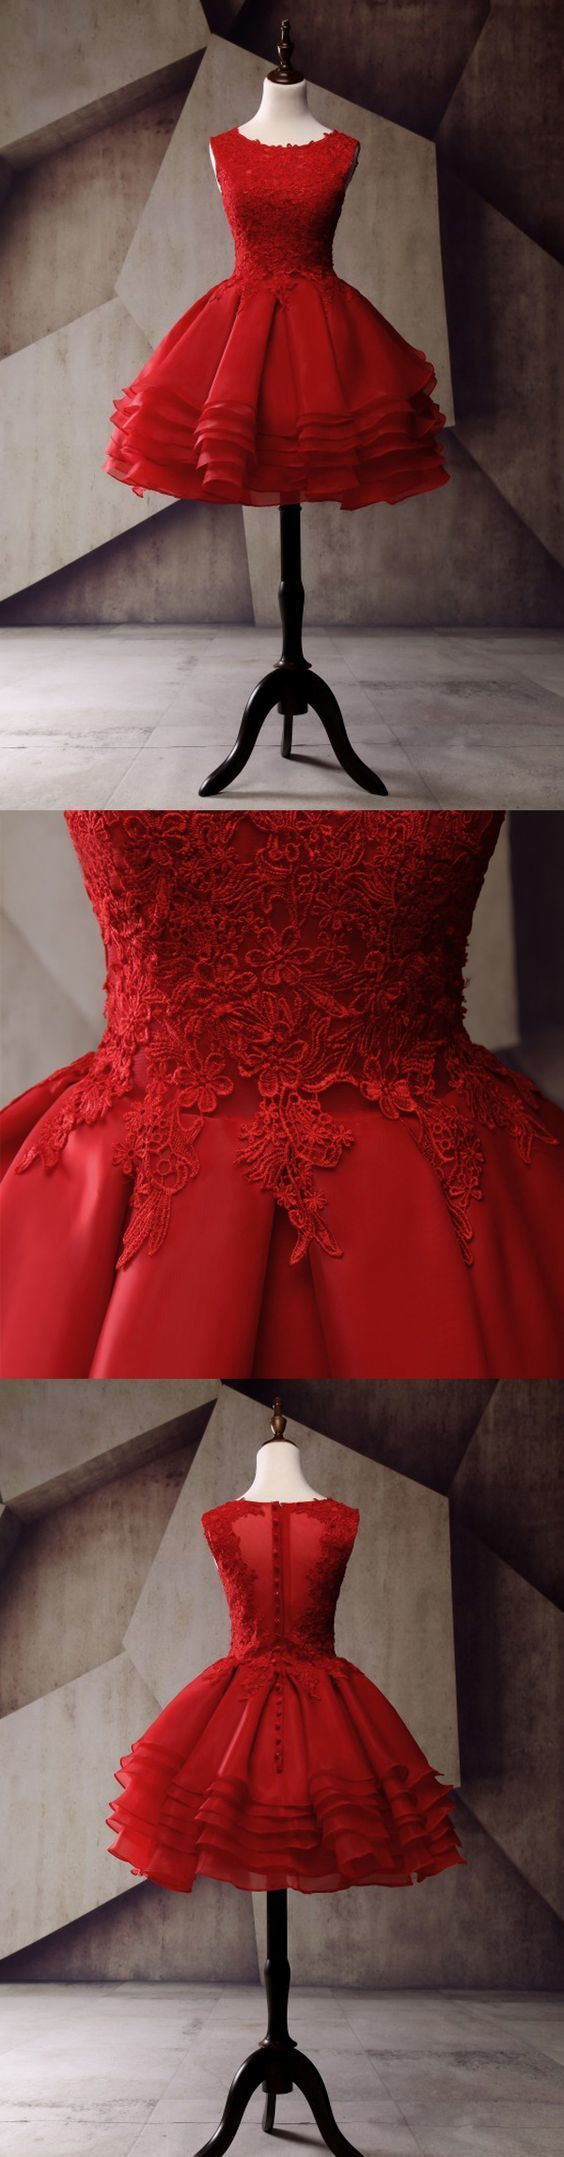 Short Homecoming Dress, Organza Homecoming Dress, Lace Homecoming Dress,